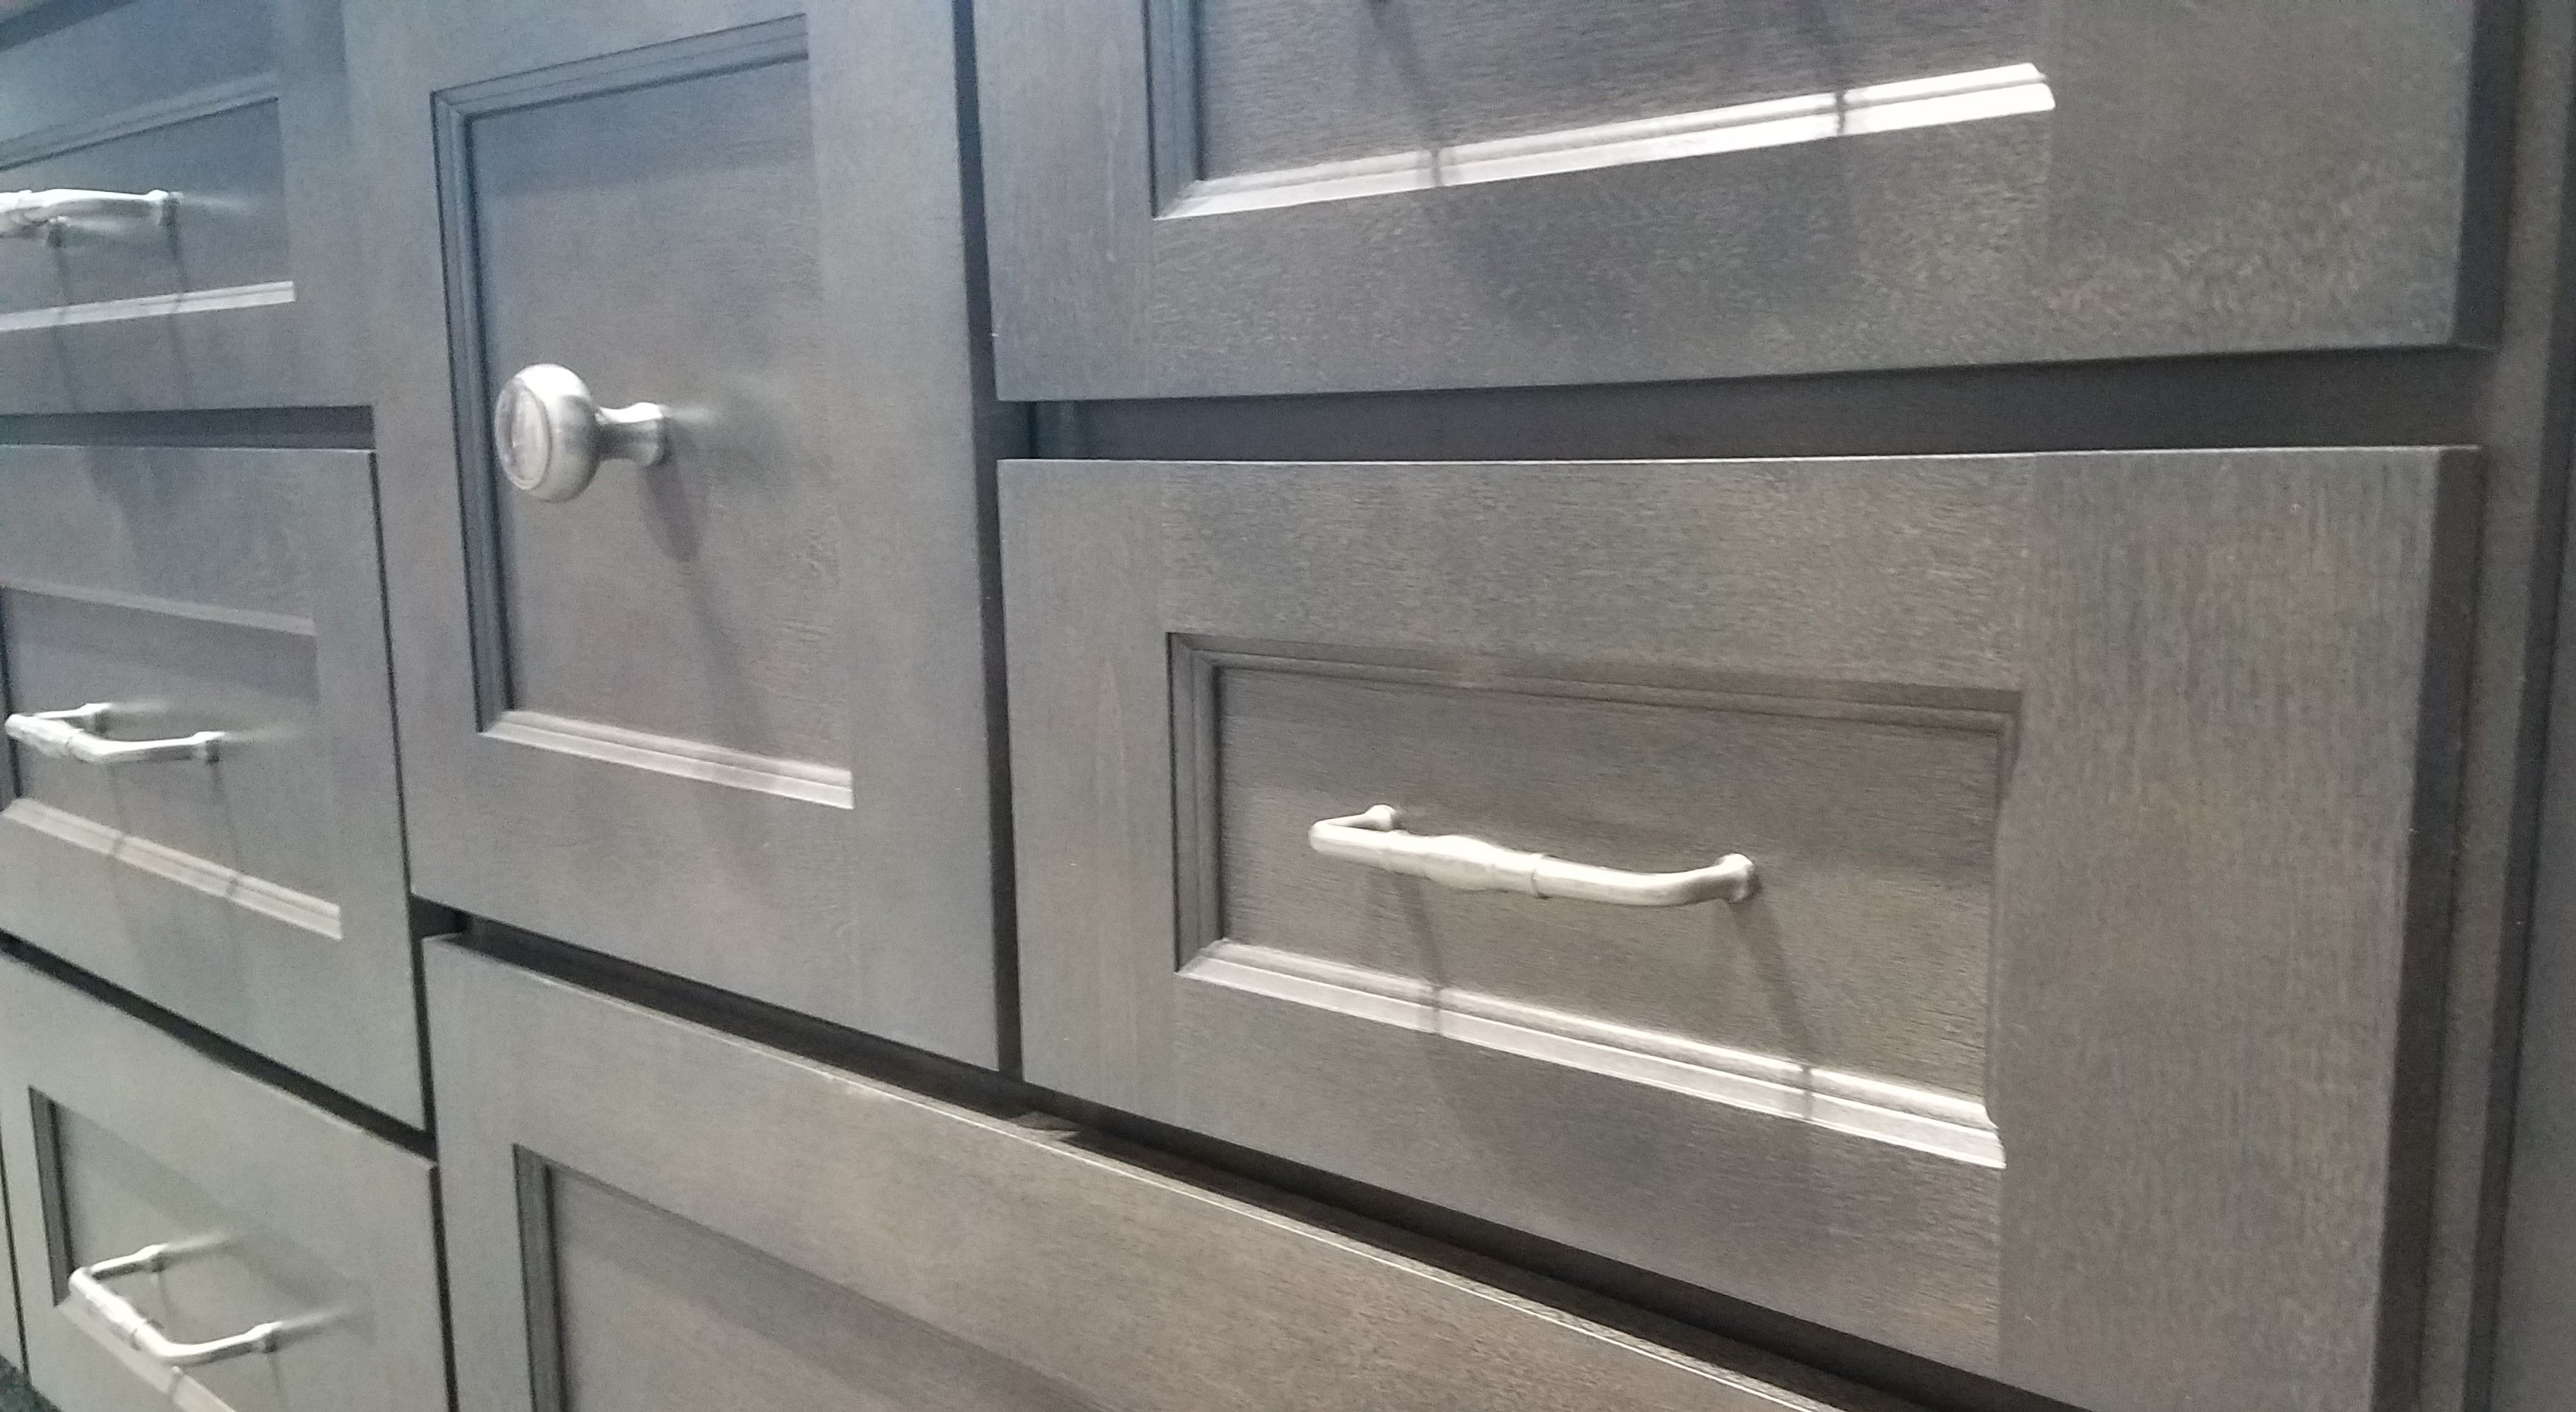 Twain Cabinets In Stonewood Are A Rich Addition To Any Home A Modified Shaker Door Is Softened By A Beautif Rta Kitchen Cabinets Cabinet Buy Kitchen Cabinets